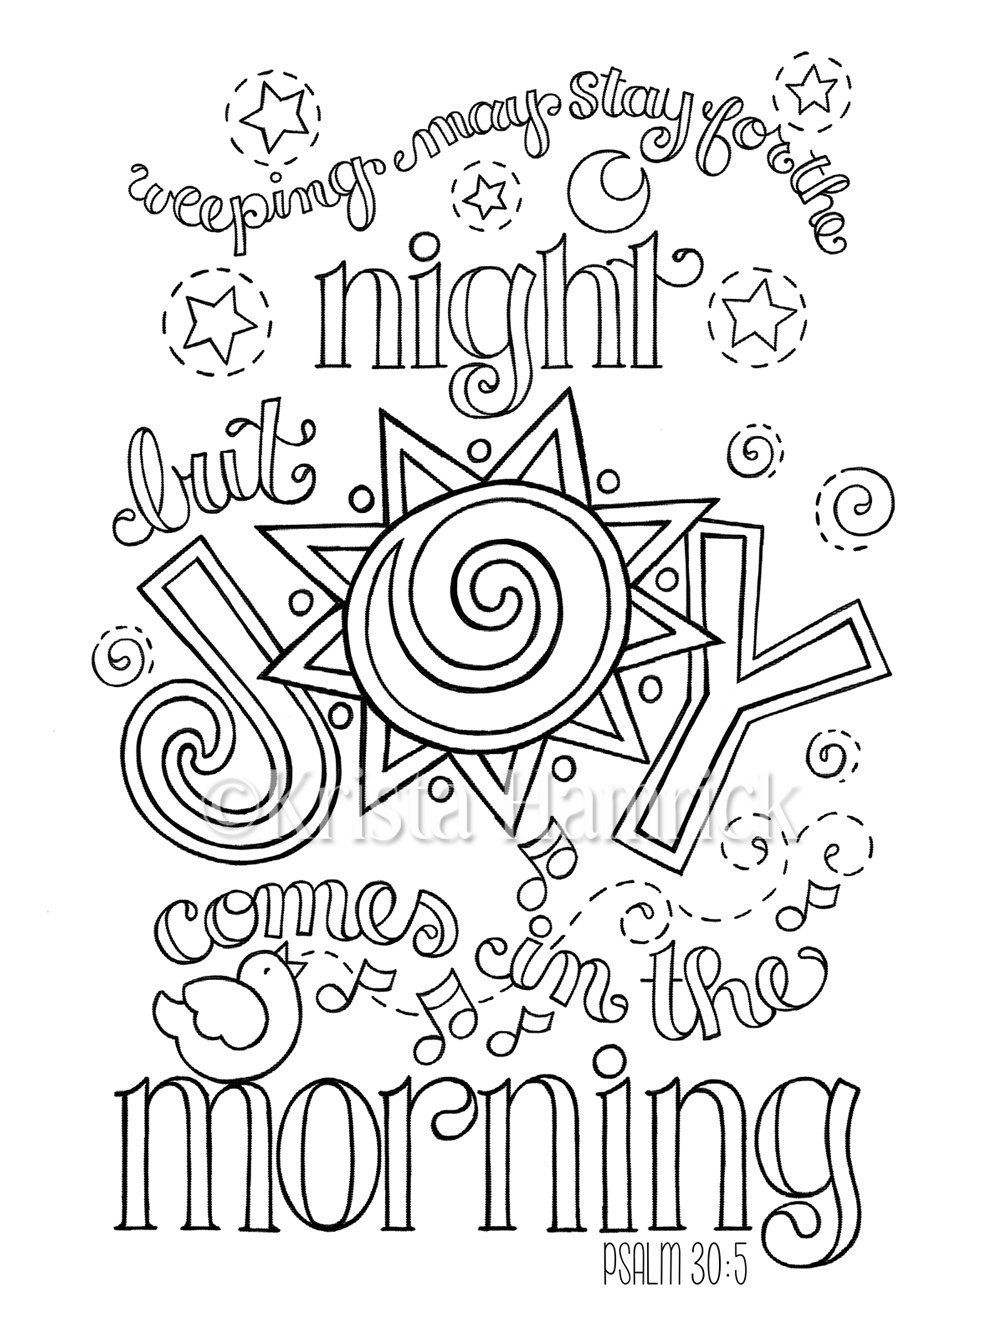 Joy Comes In The Morning Coloring Page Two Sizes Included 8 5